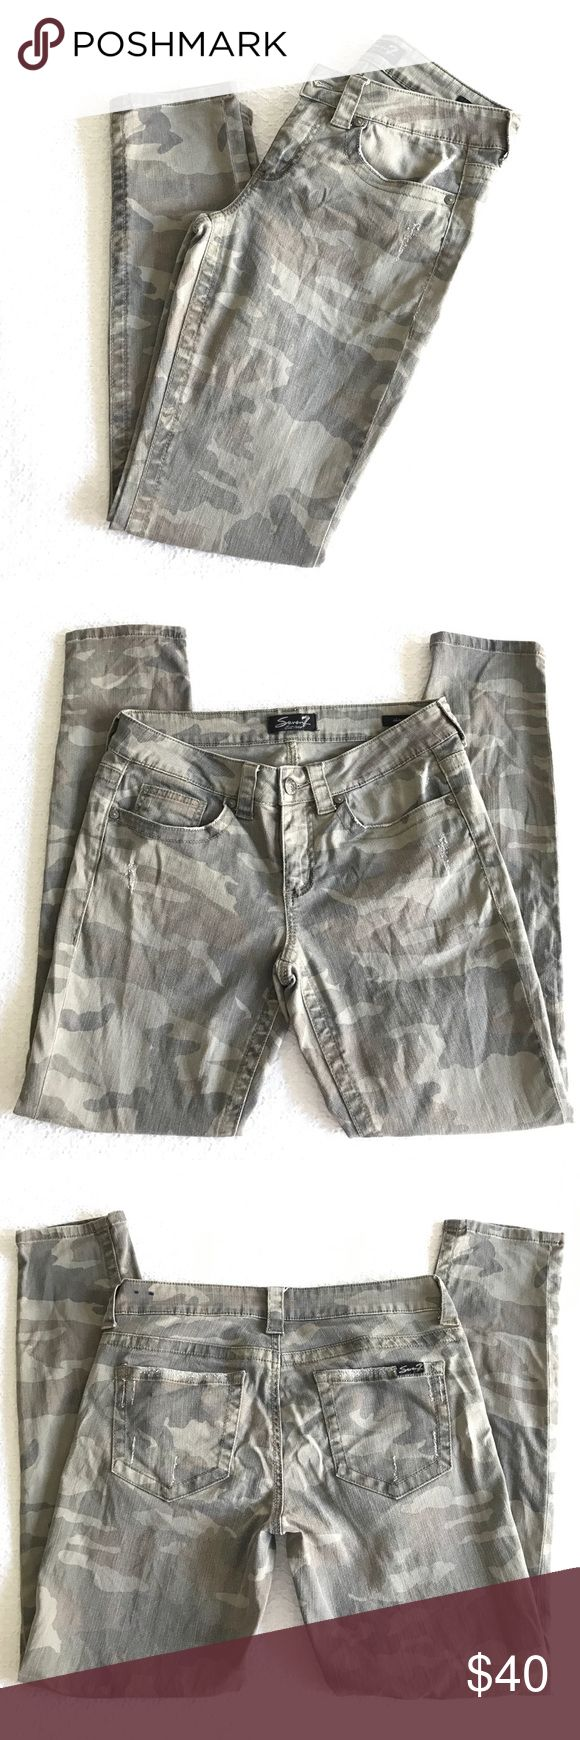 Seven7 camouflage skinny jeans size 6 Seven7 camouflage skinny jeans size 6 Seven7 Jeans Skinny